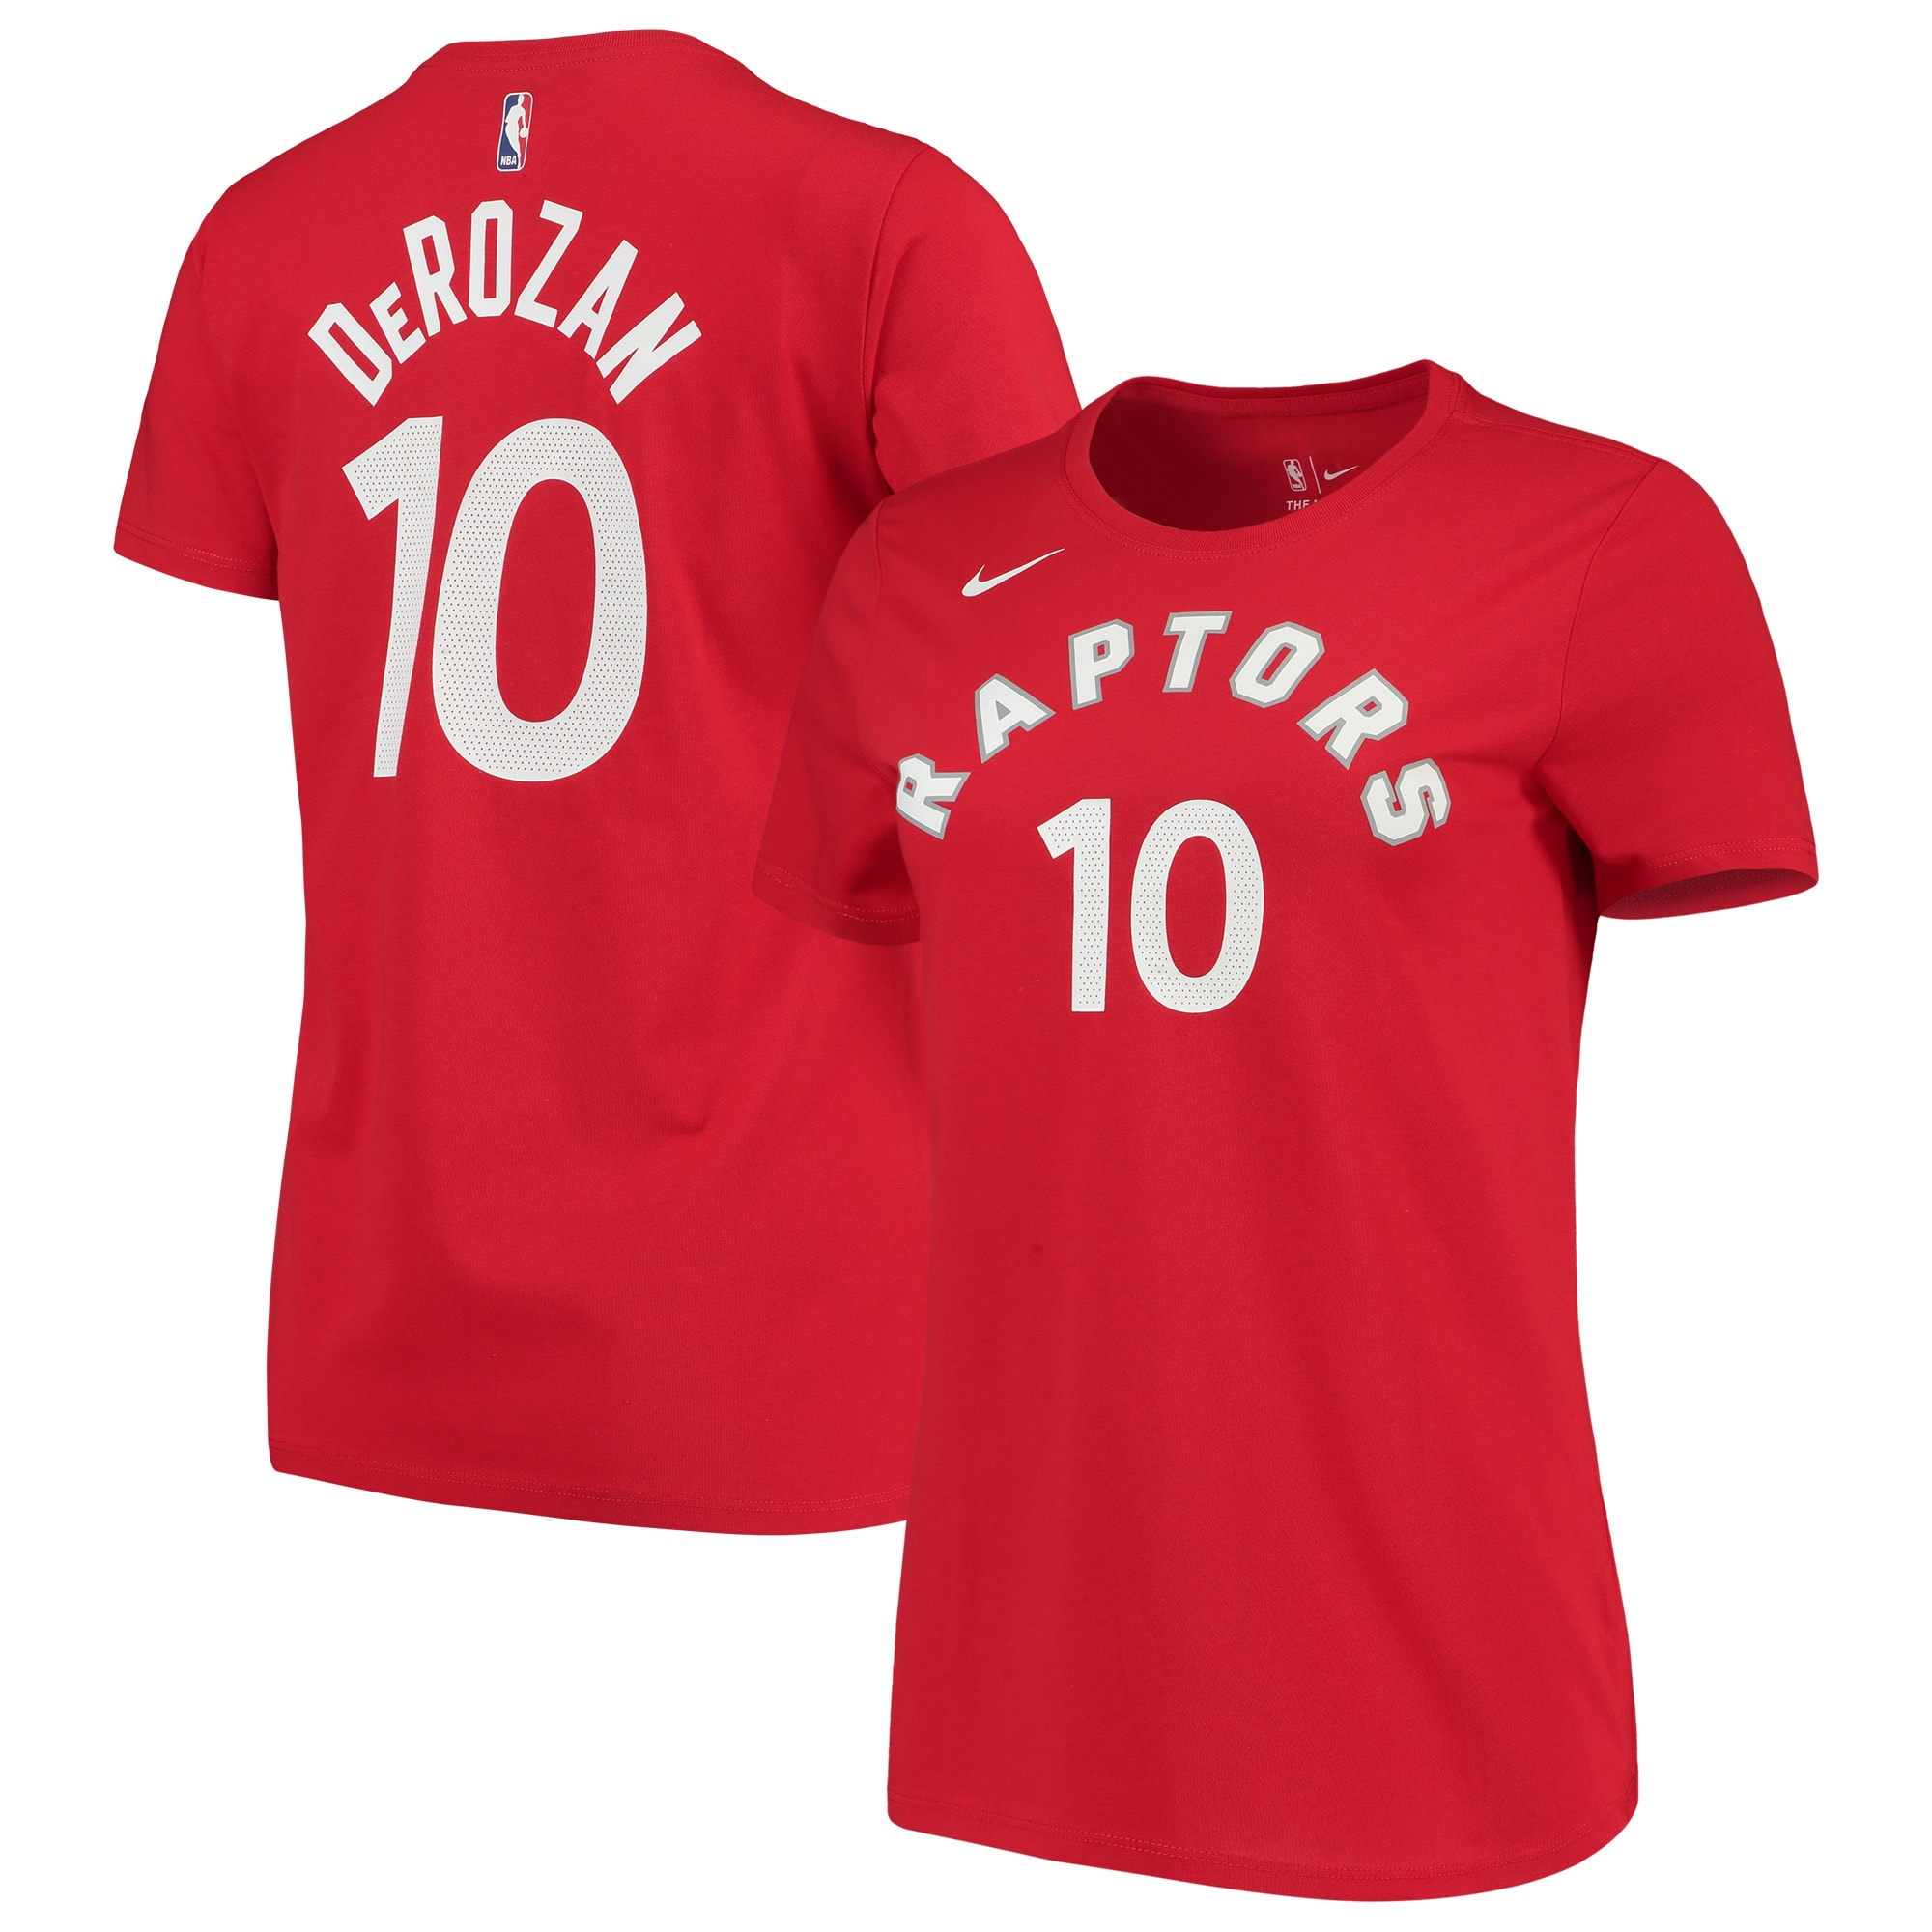 DeMar DeRozan Toronto Raptors Nike Women's Name & Number Performance T-Shirt - Red